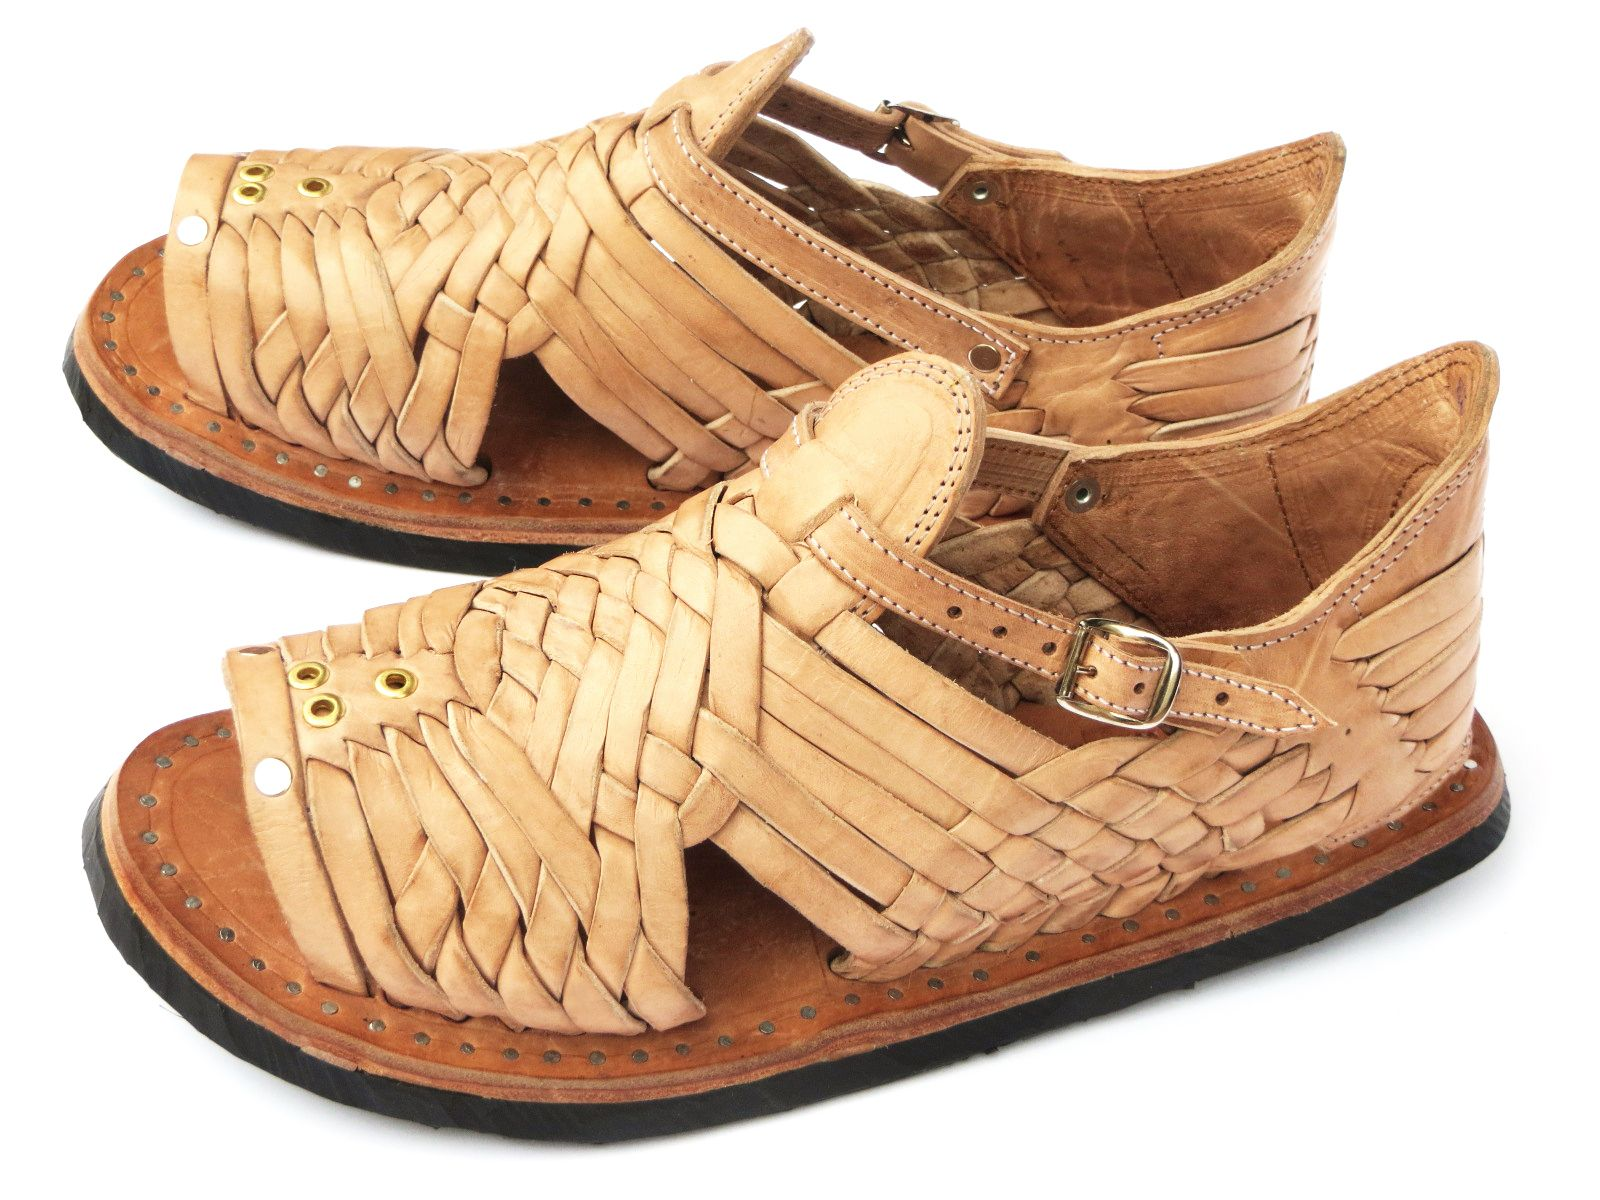 45c72b3e58c This style Huarache is known as the